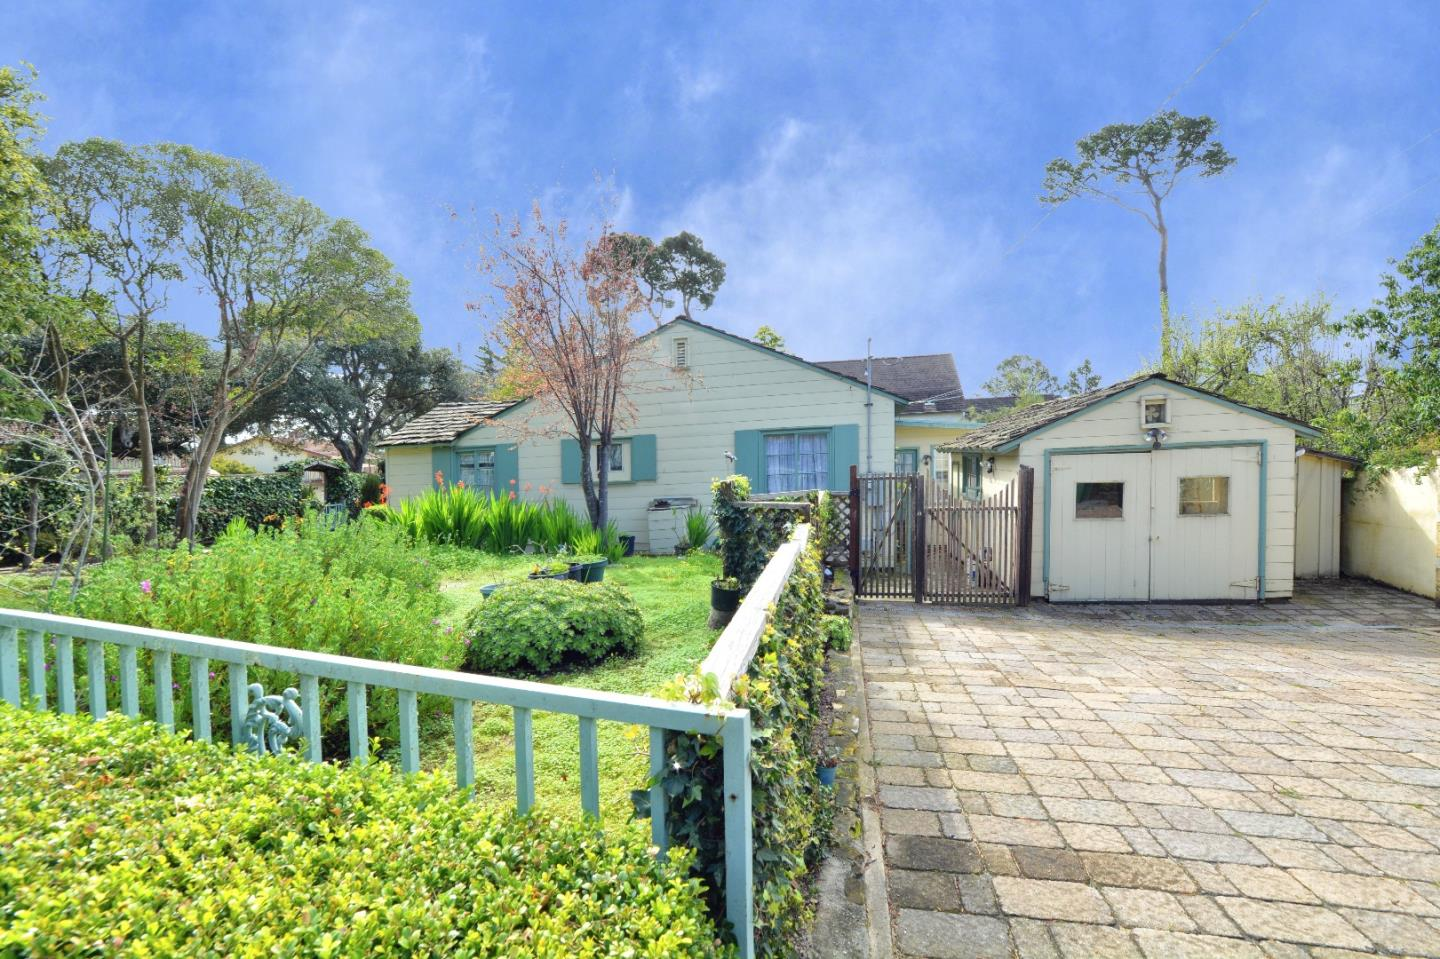 Additional photo for property listing at 24800 Carpenter Rd  CARMEL, CALIFORNIA 93923